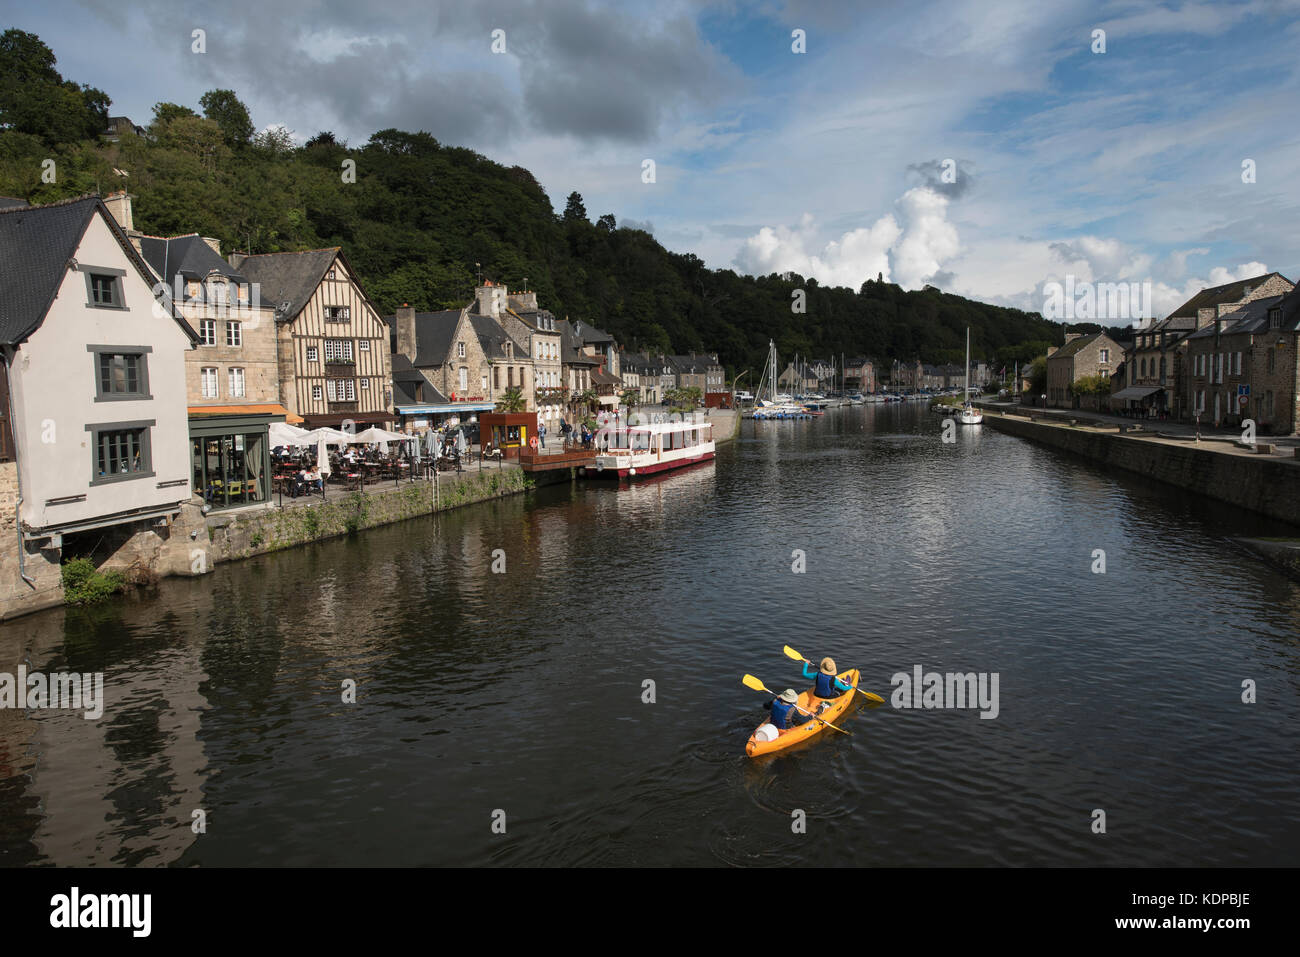 Canoeists on River Rance, Dinan, Brittany, France. Stock Photo